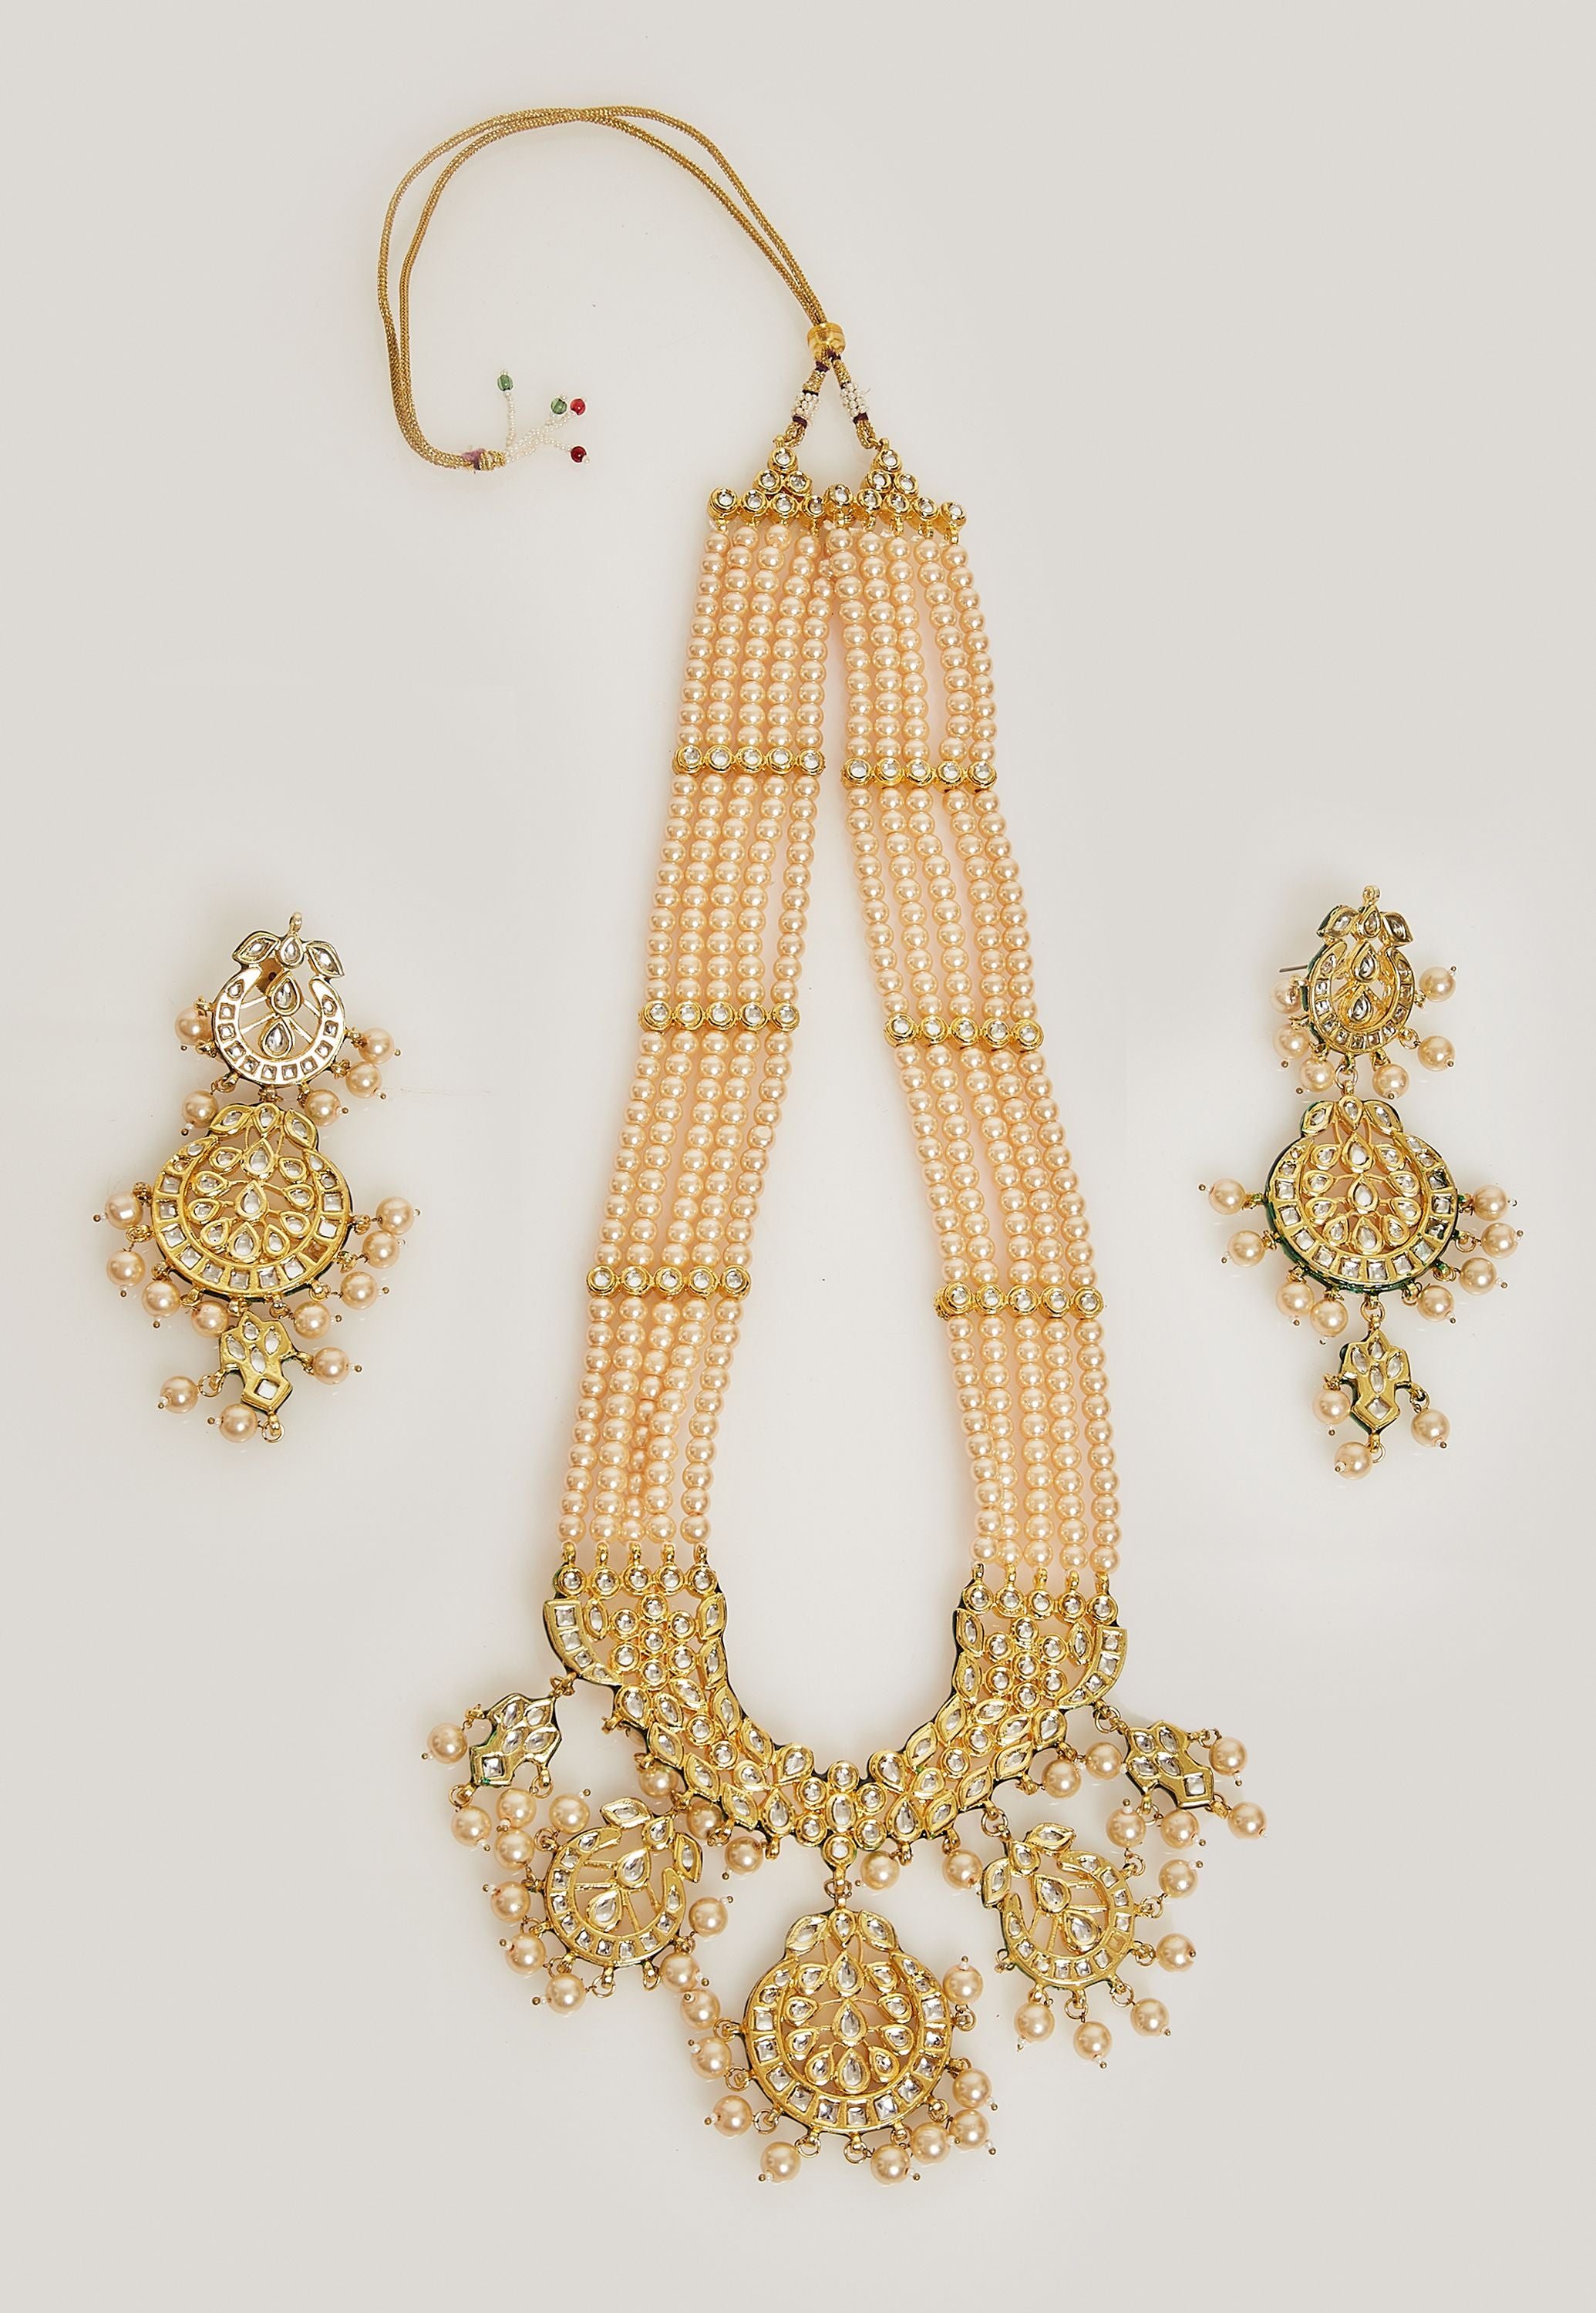 KUNDAN PEARL LONG RANI NECKLACE SET